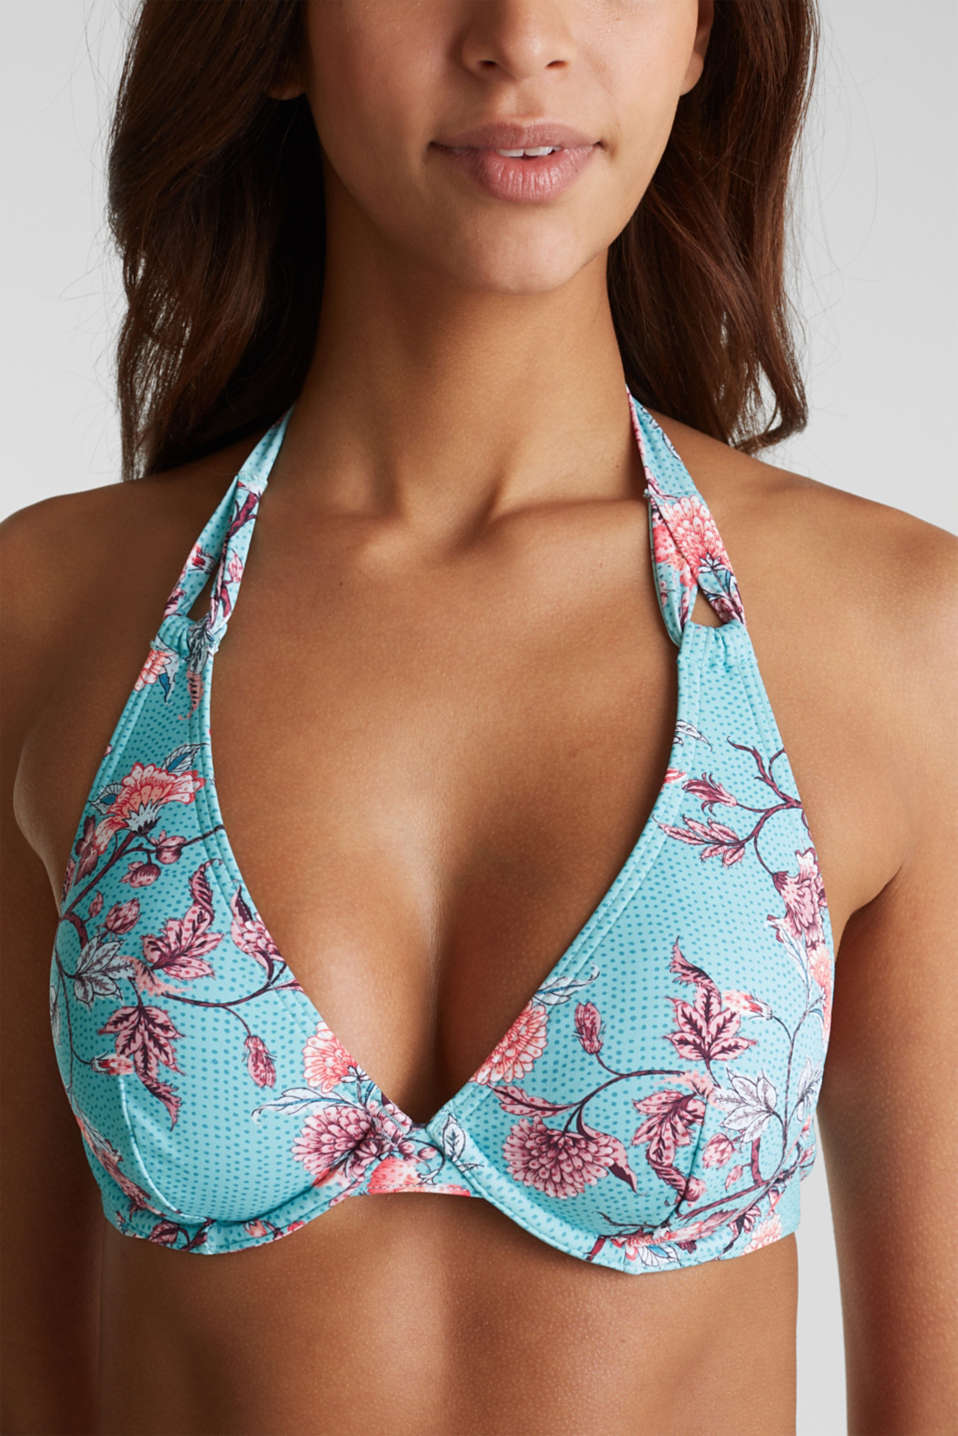 Unpadded underwire bikini top with floral tendrils, TURQUOISE, detail image number 2